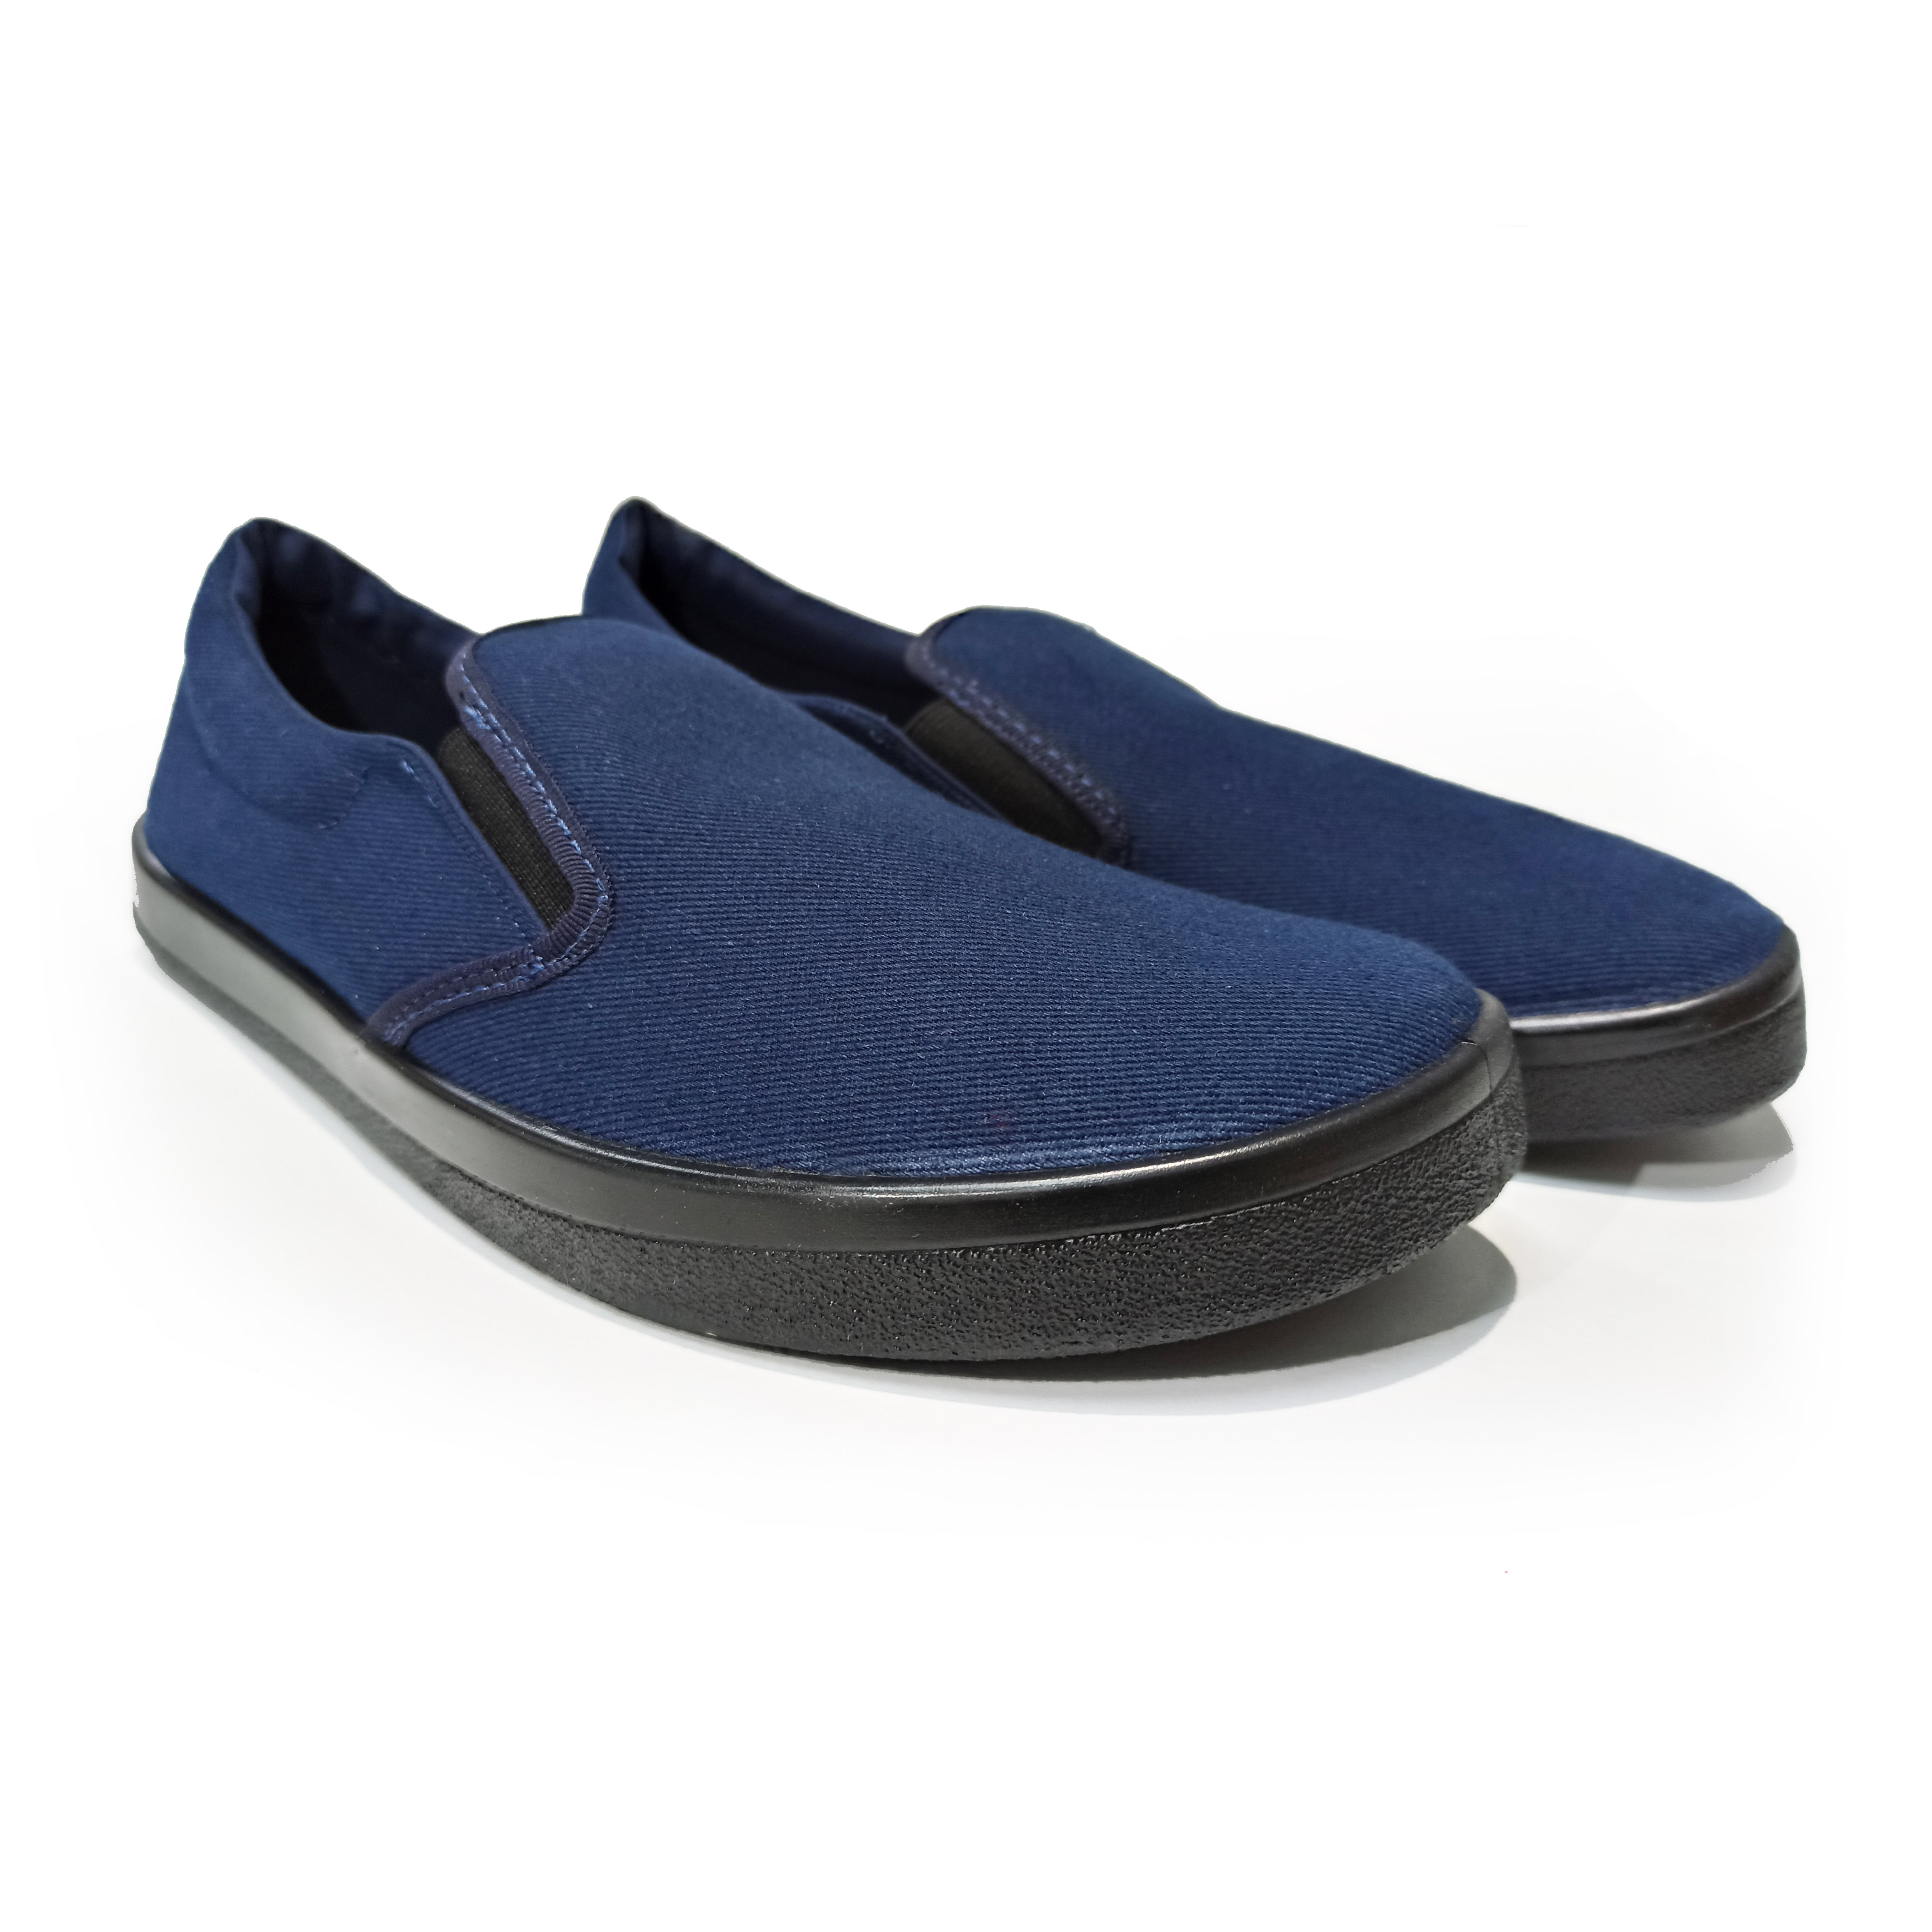 ANATOMIC Slip on-  ALL IN- AB03 - modrá s čiernou